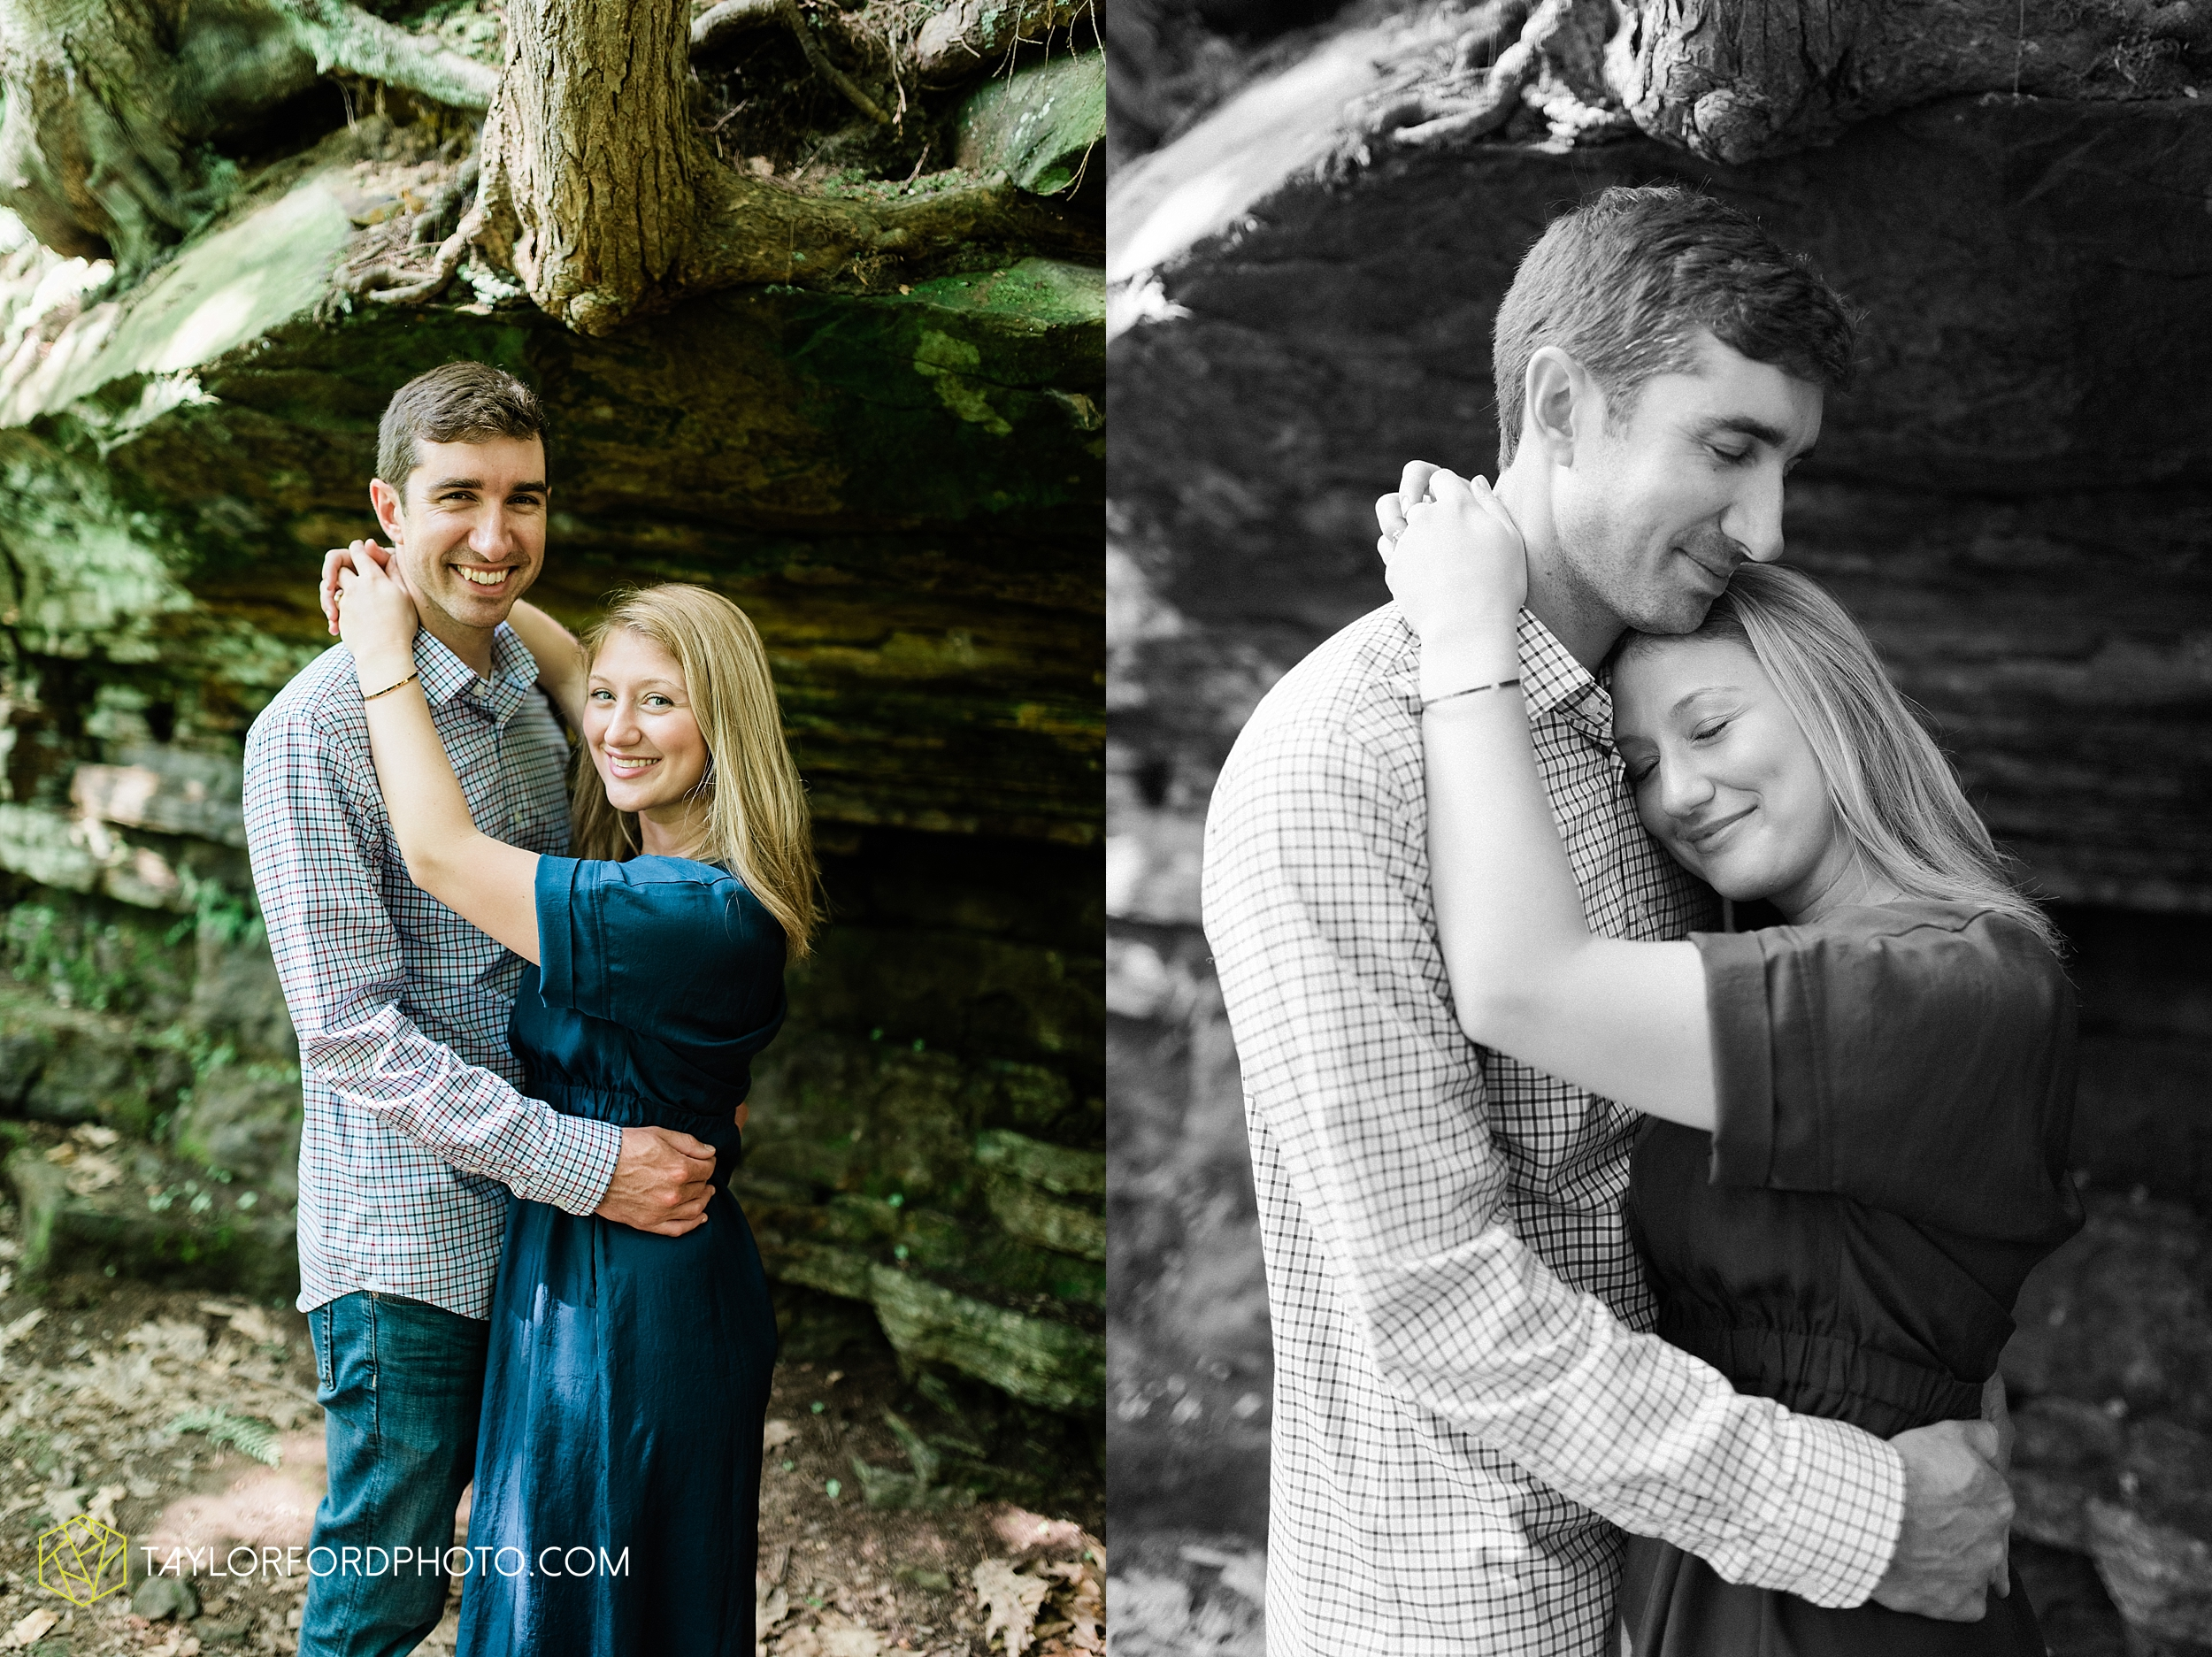 margo-evan-kohler-south-chagrin-reservation-chagrin-falls-cleveland-ohio-engagement-wedding-photographer-Taylor-Ford-Photography_8189.jpg